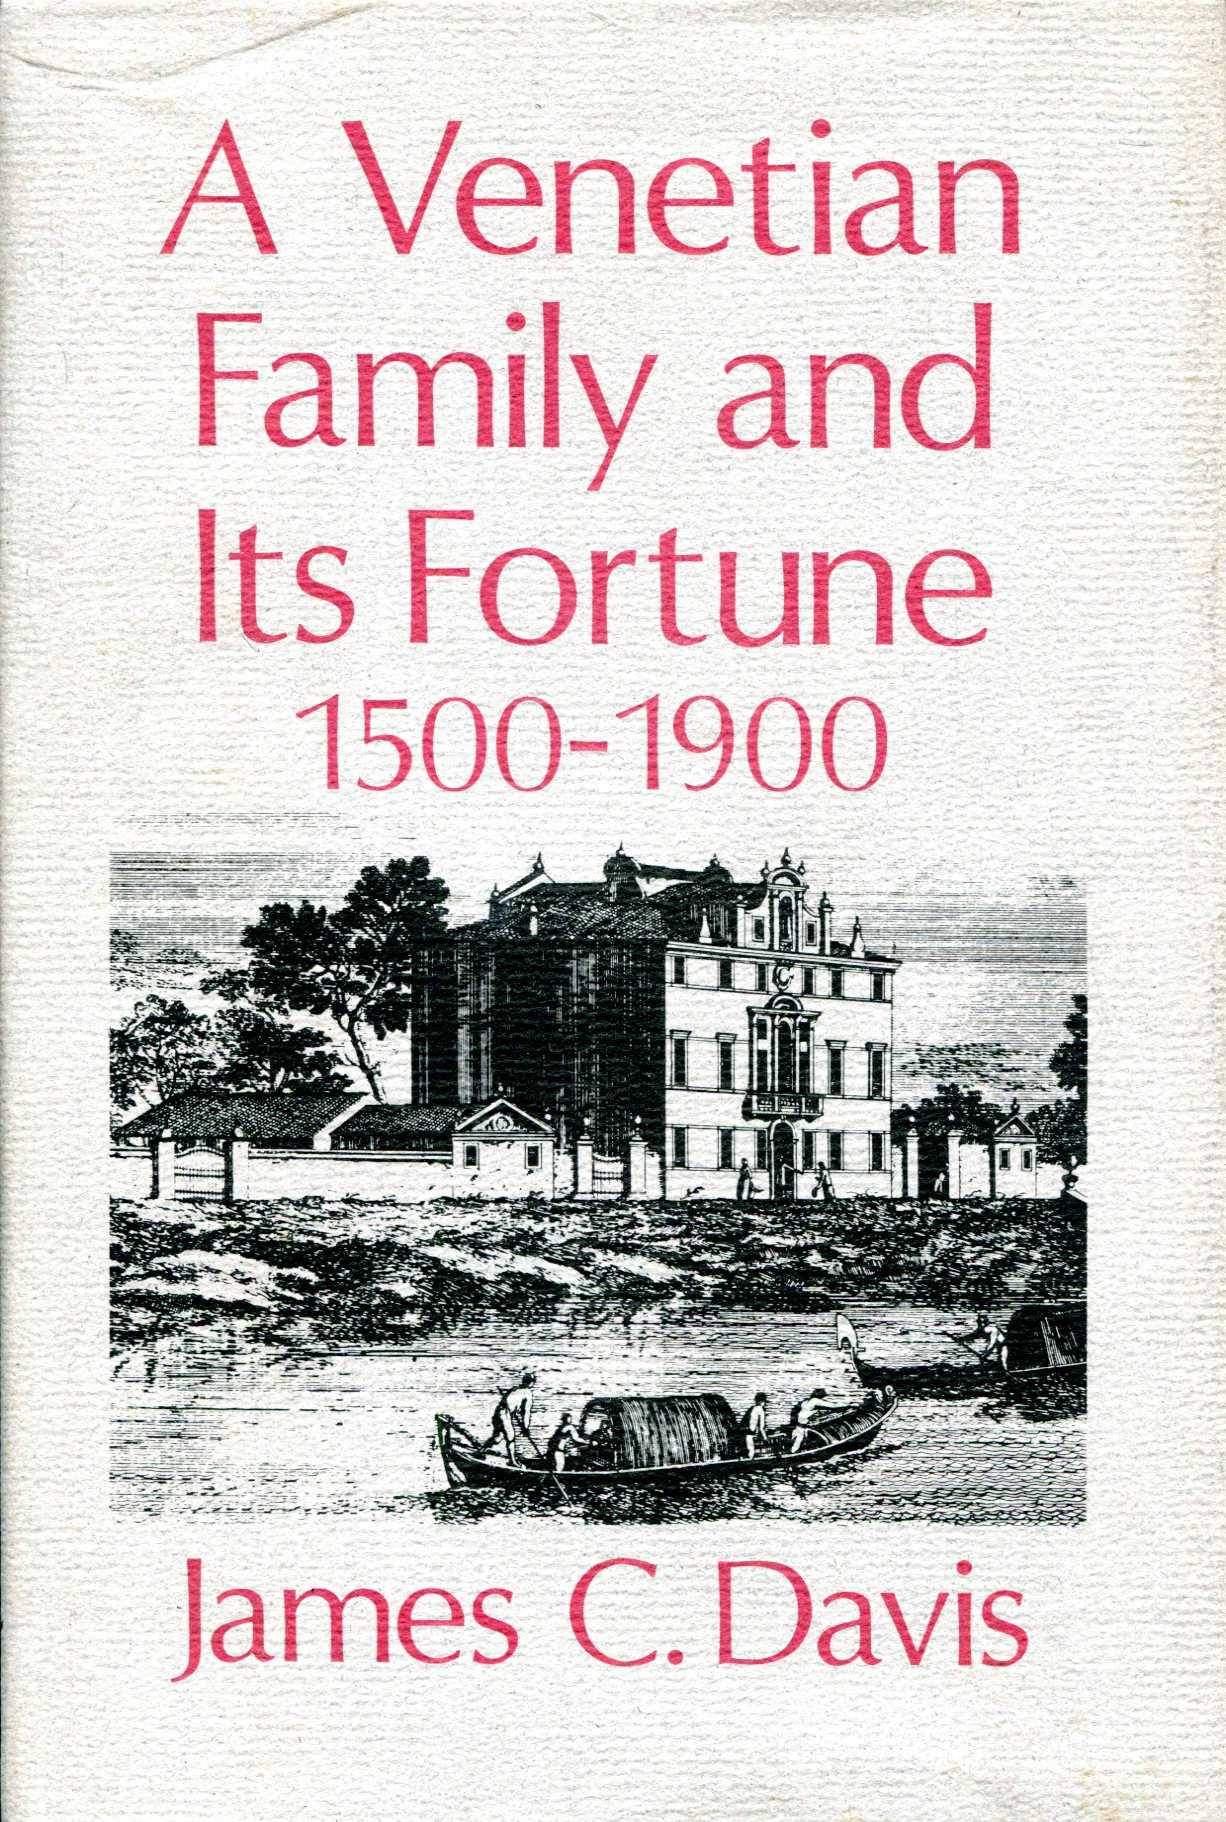 Image for A Venetian family and its fortune, 1500-1900 : The Dona and the conservation of their wealth